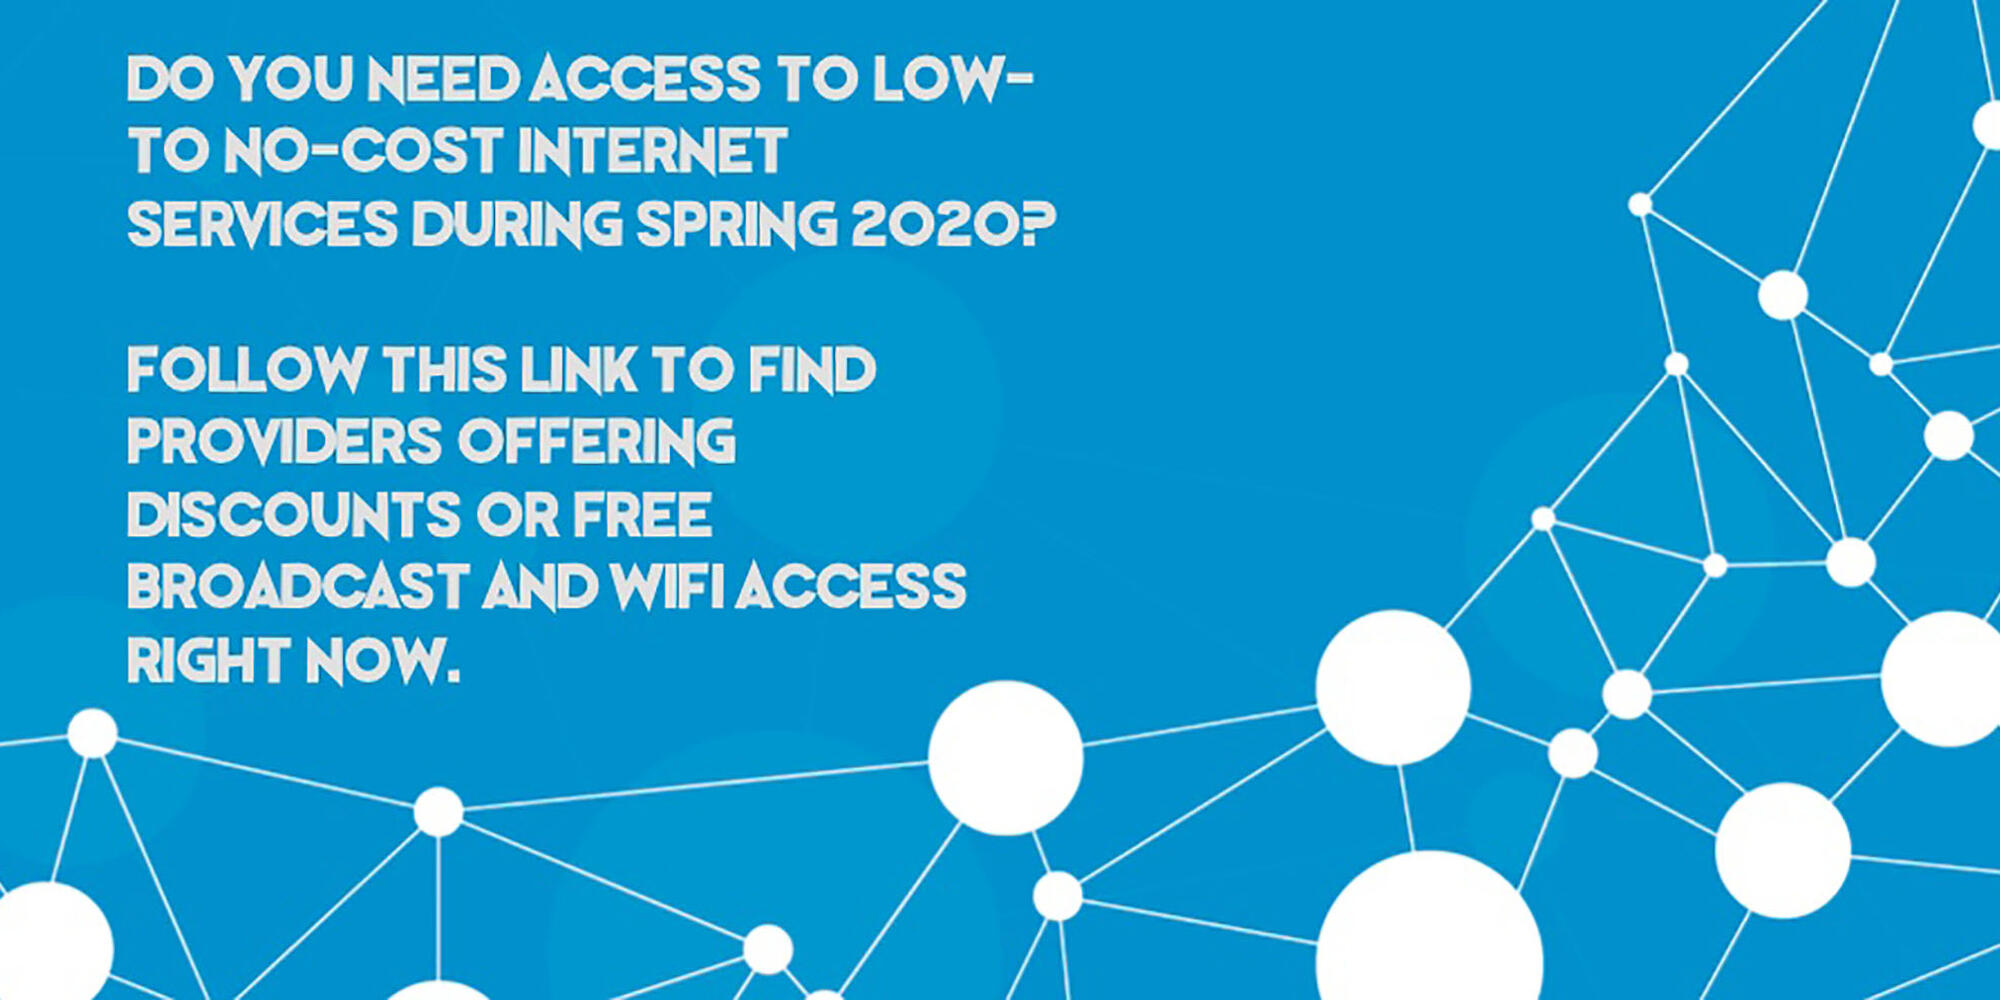 Low to No-Cost Internet Services